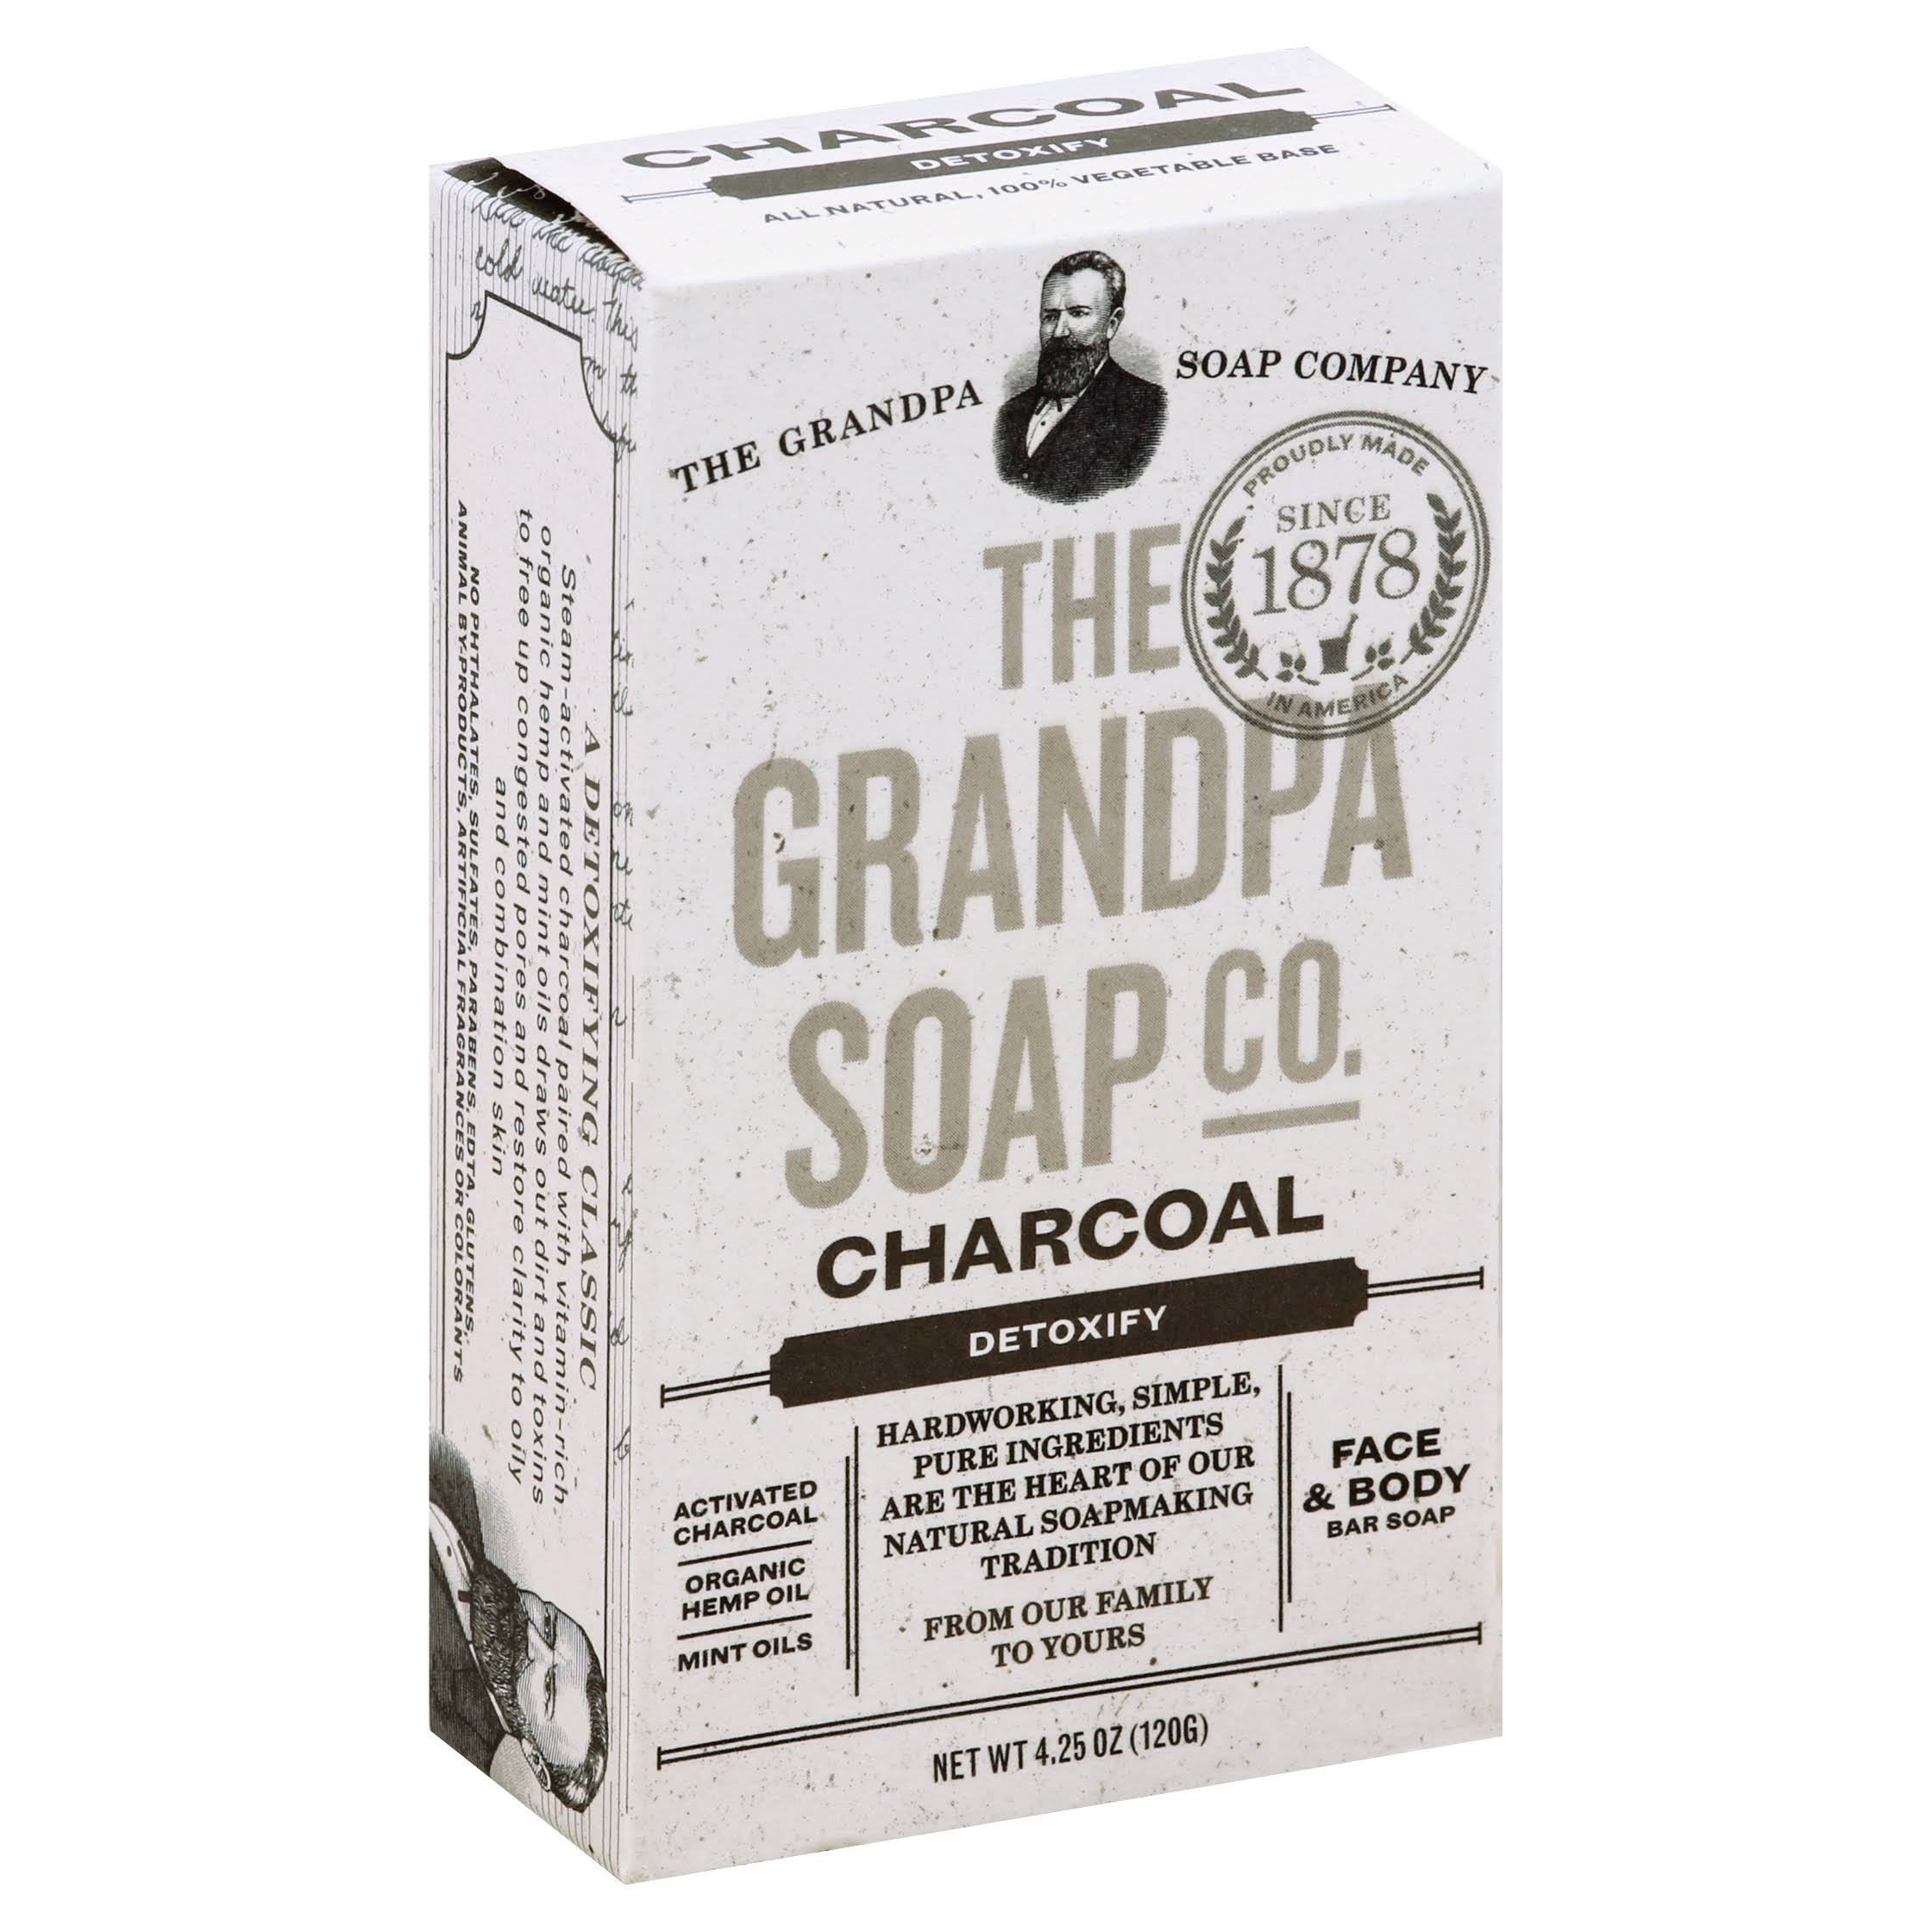 The Grandpa Soap Company Face and Body Bar Soap - Detoxify, Charcoal, 4.25oz